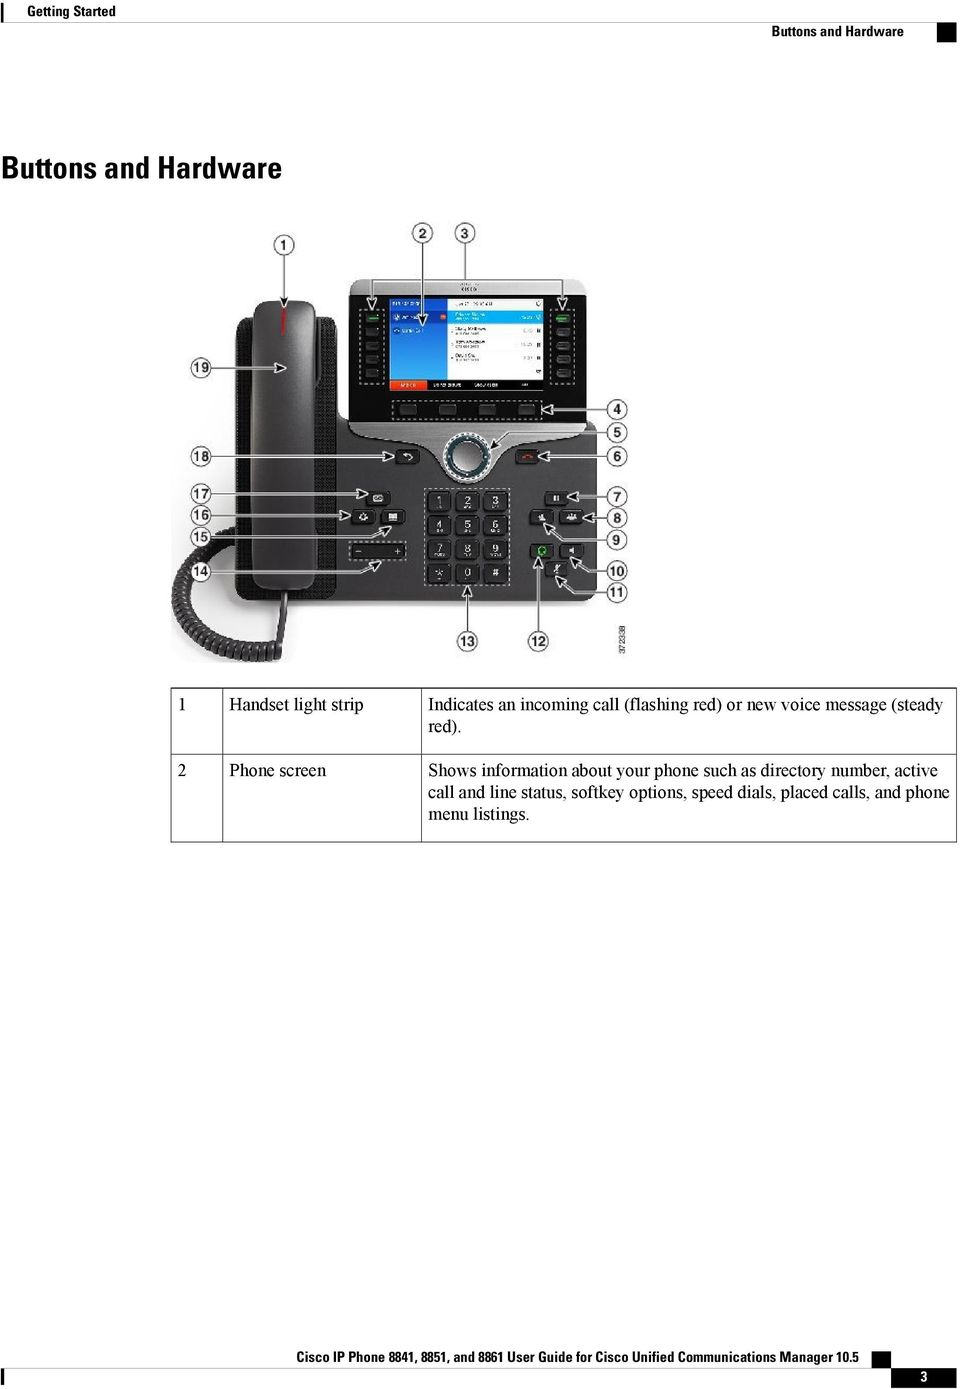 Cisco IP Phone 8841, 8851, and 8861 User Guide for Cisco